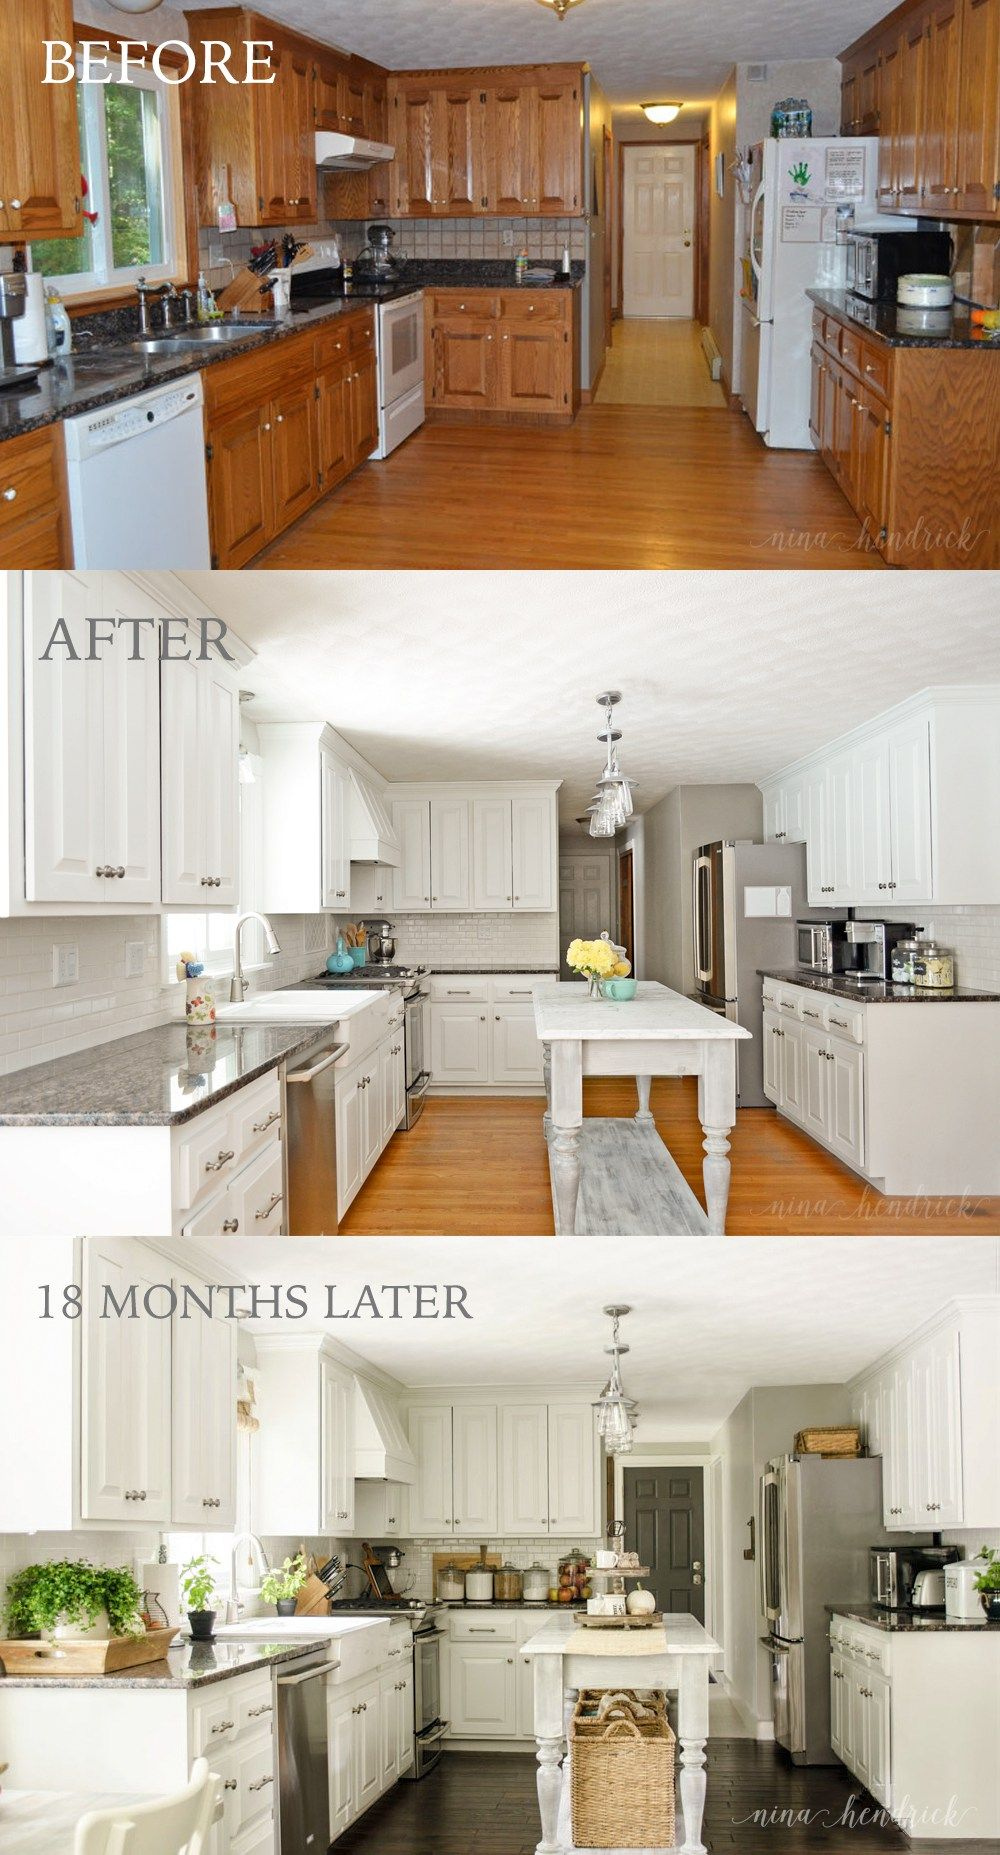 How To Paint Oak Cabinets And Hide The Grain Kitchen Design - What kind of paint for kitchen cabinets